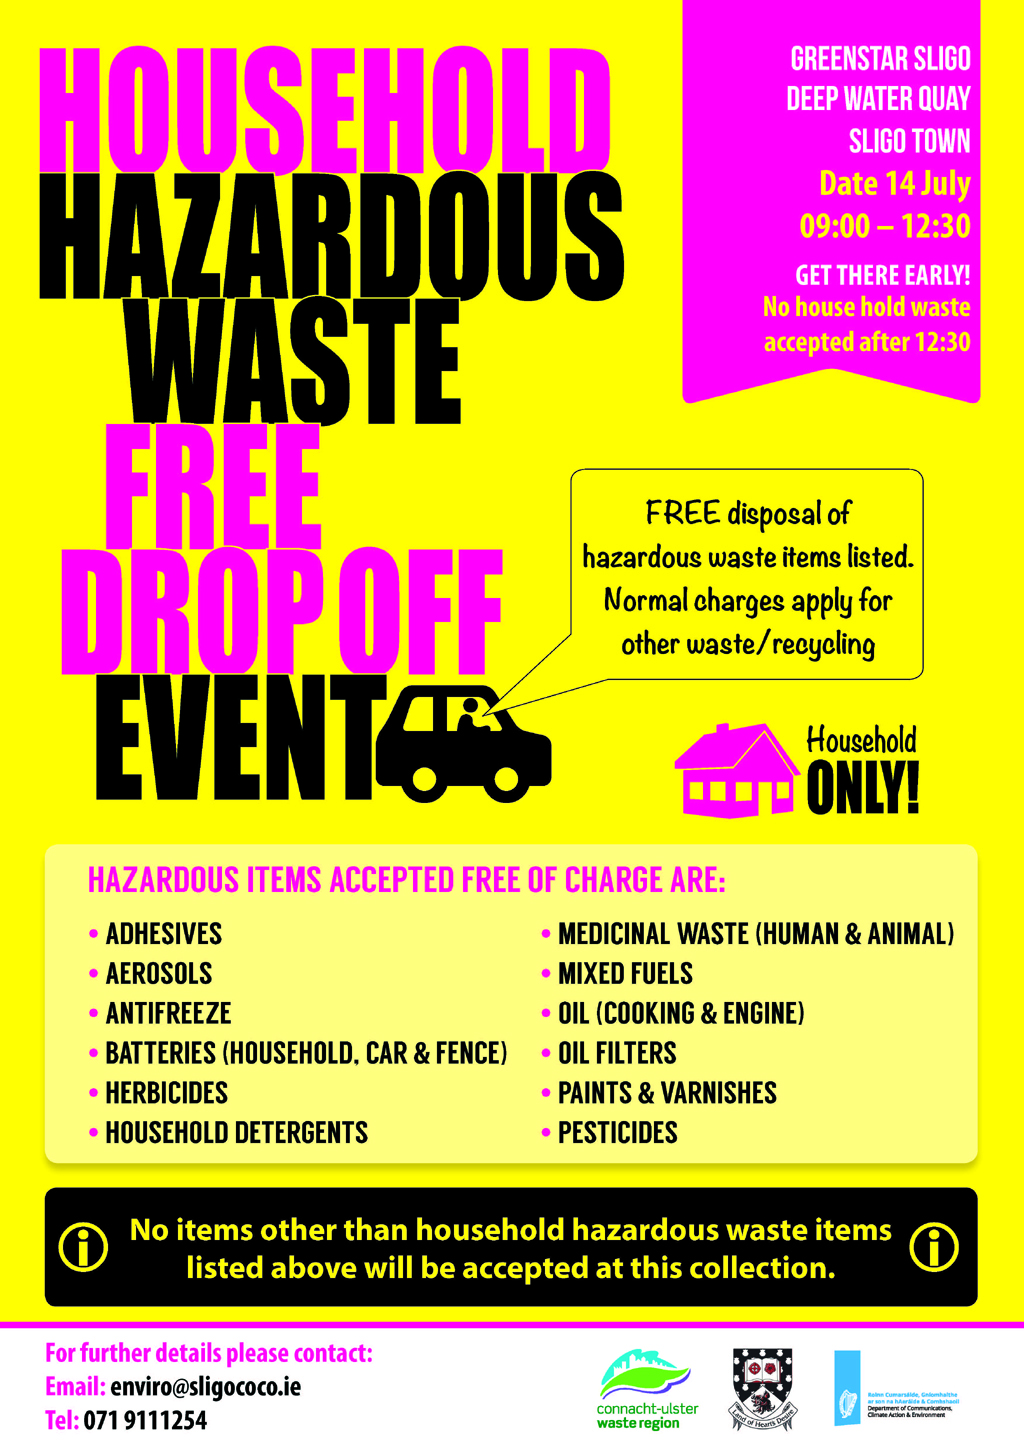 Disposing of Your Home's Hazardous Waste